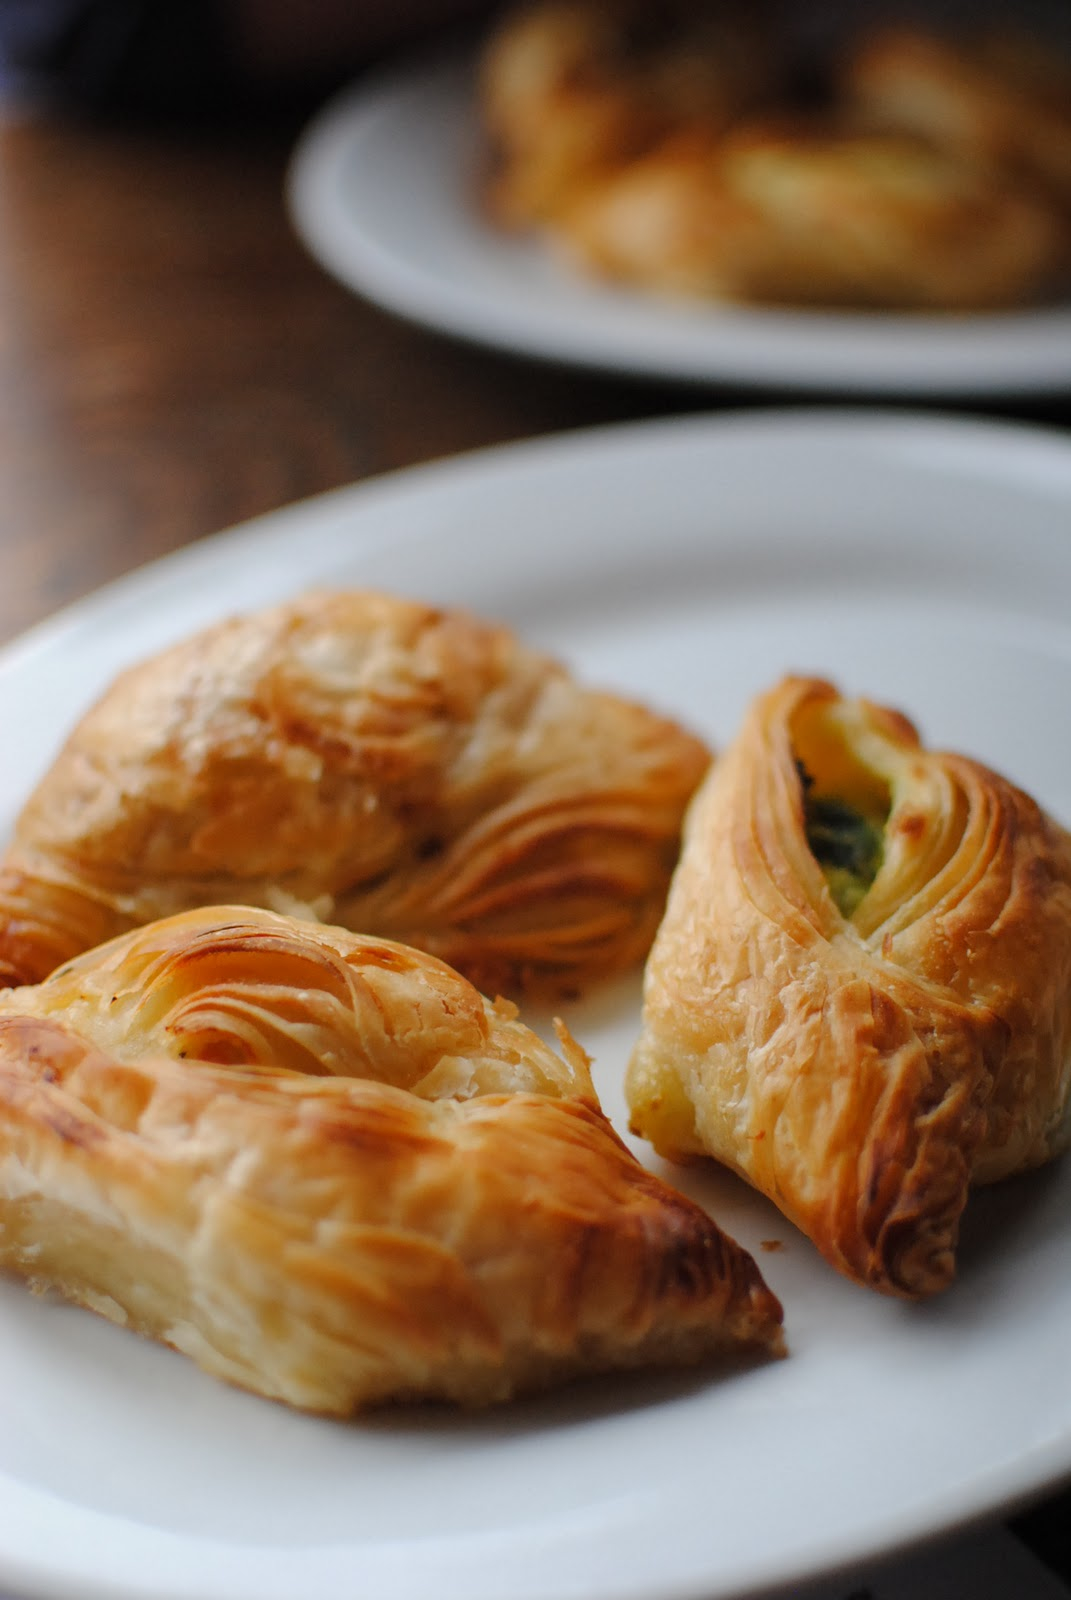 Pastizzi usually have a filling either of ricotta or of mushy peas.